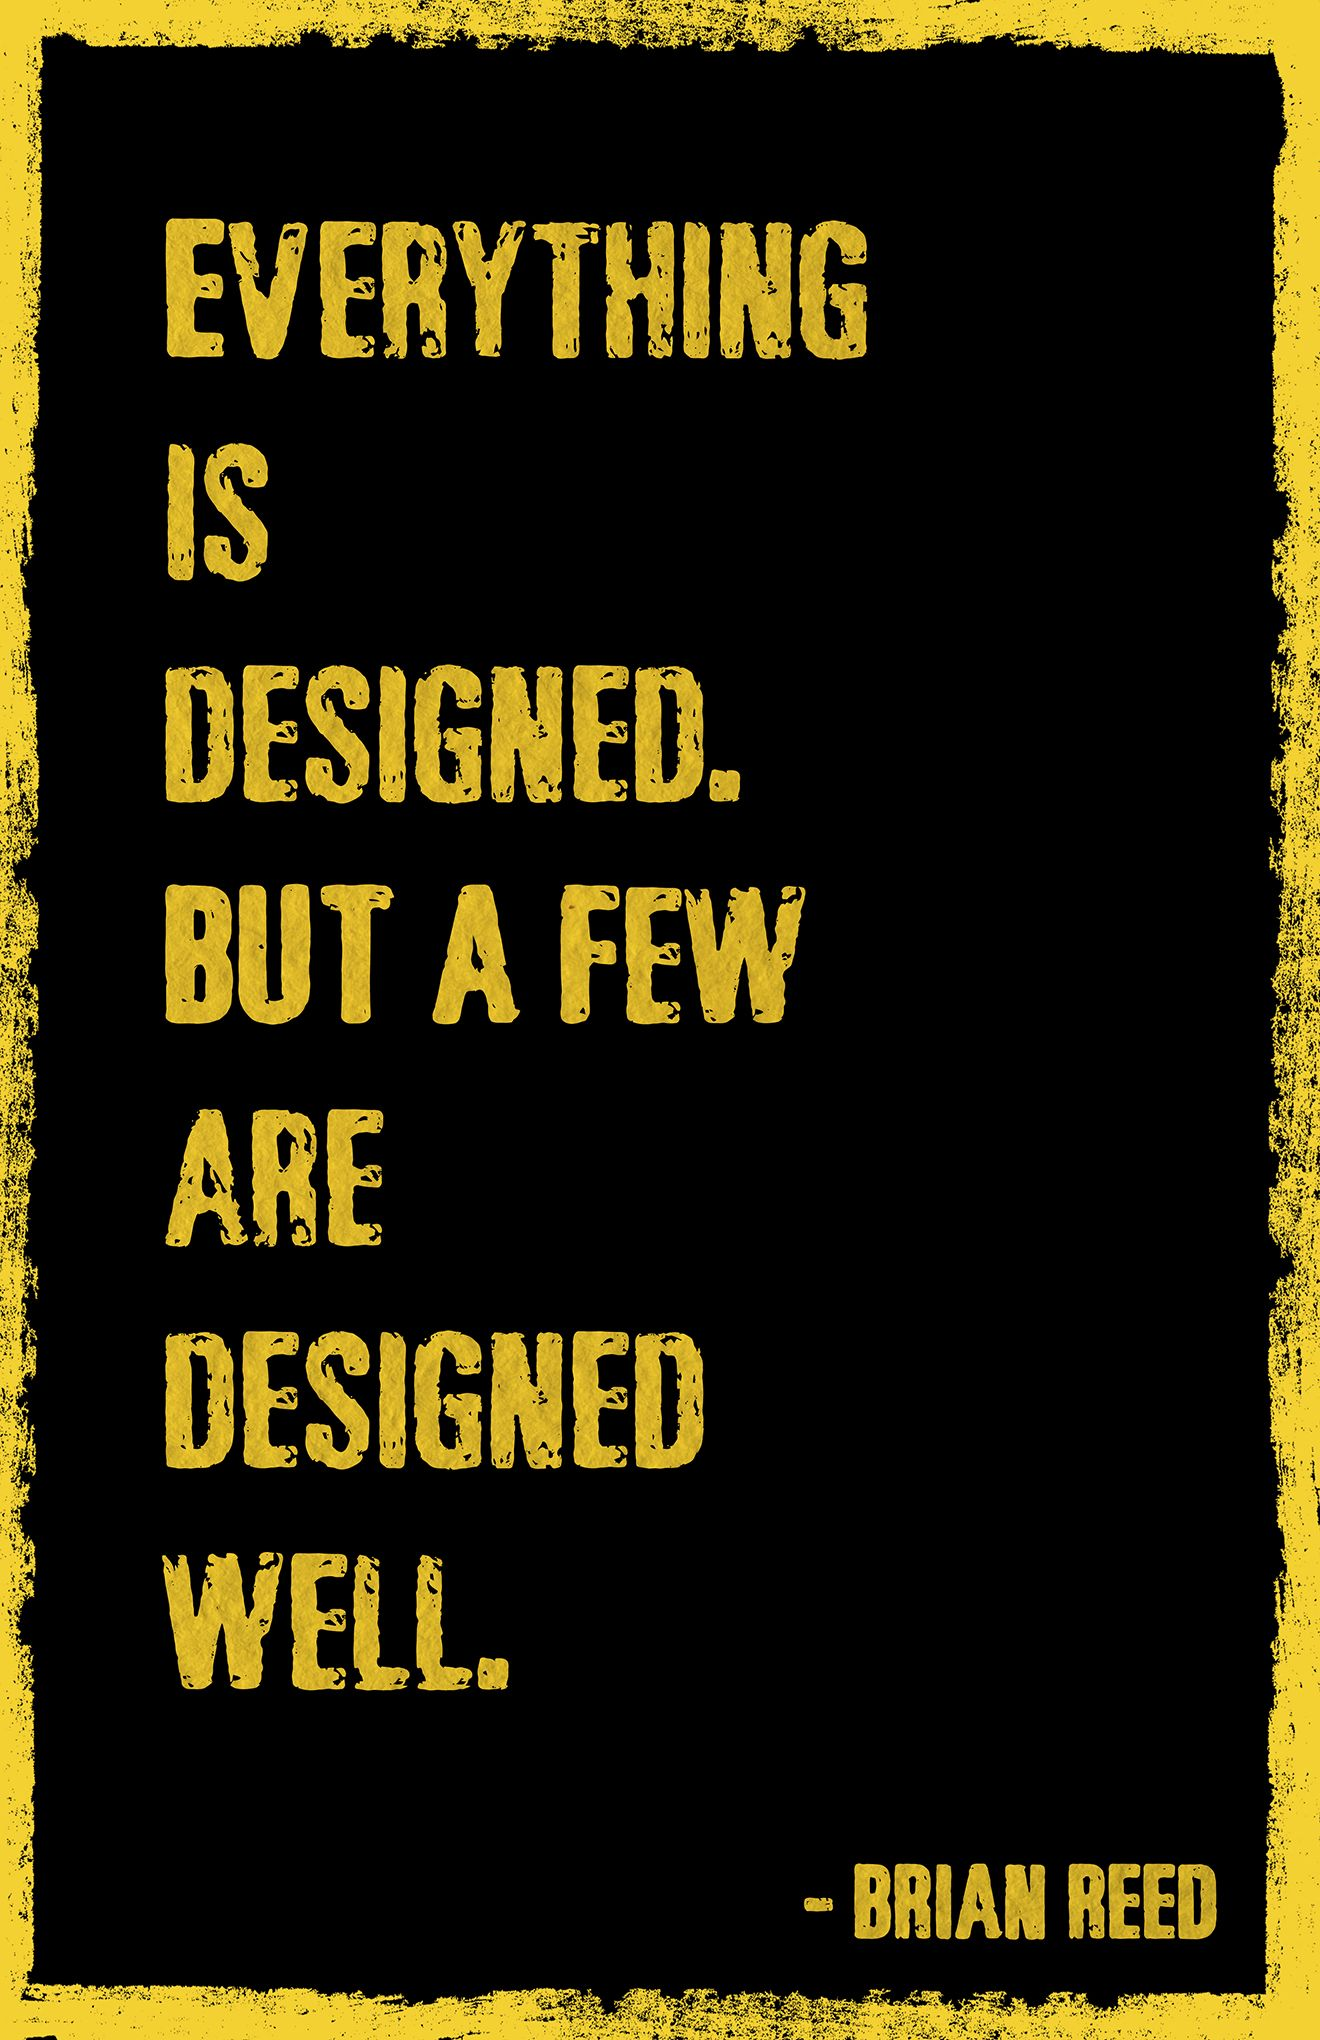 Pin by Shuster Design Associates on Design Quotes We Love